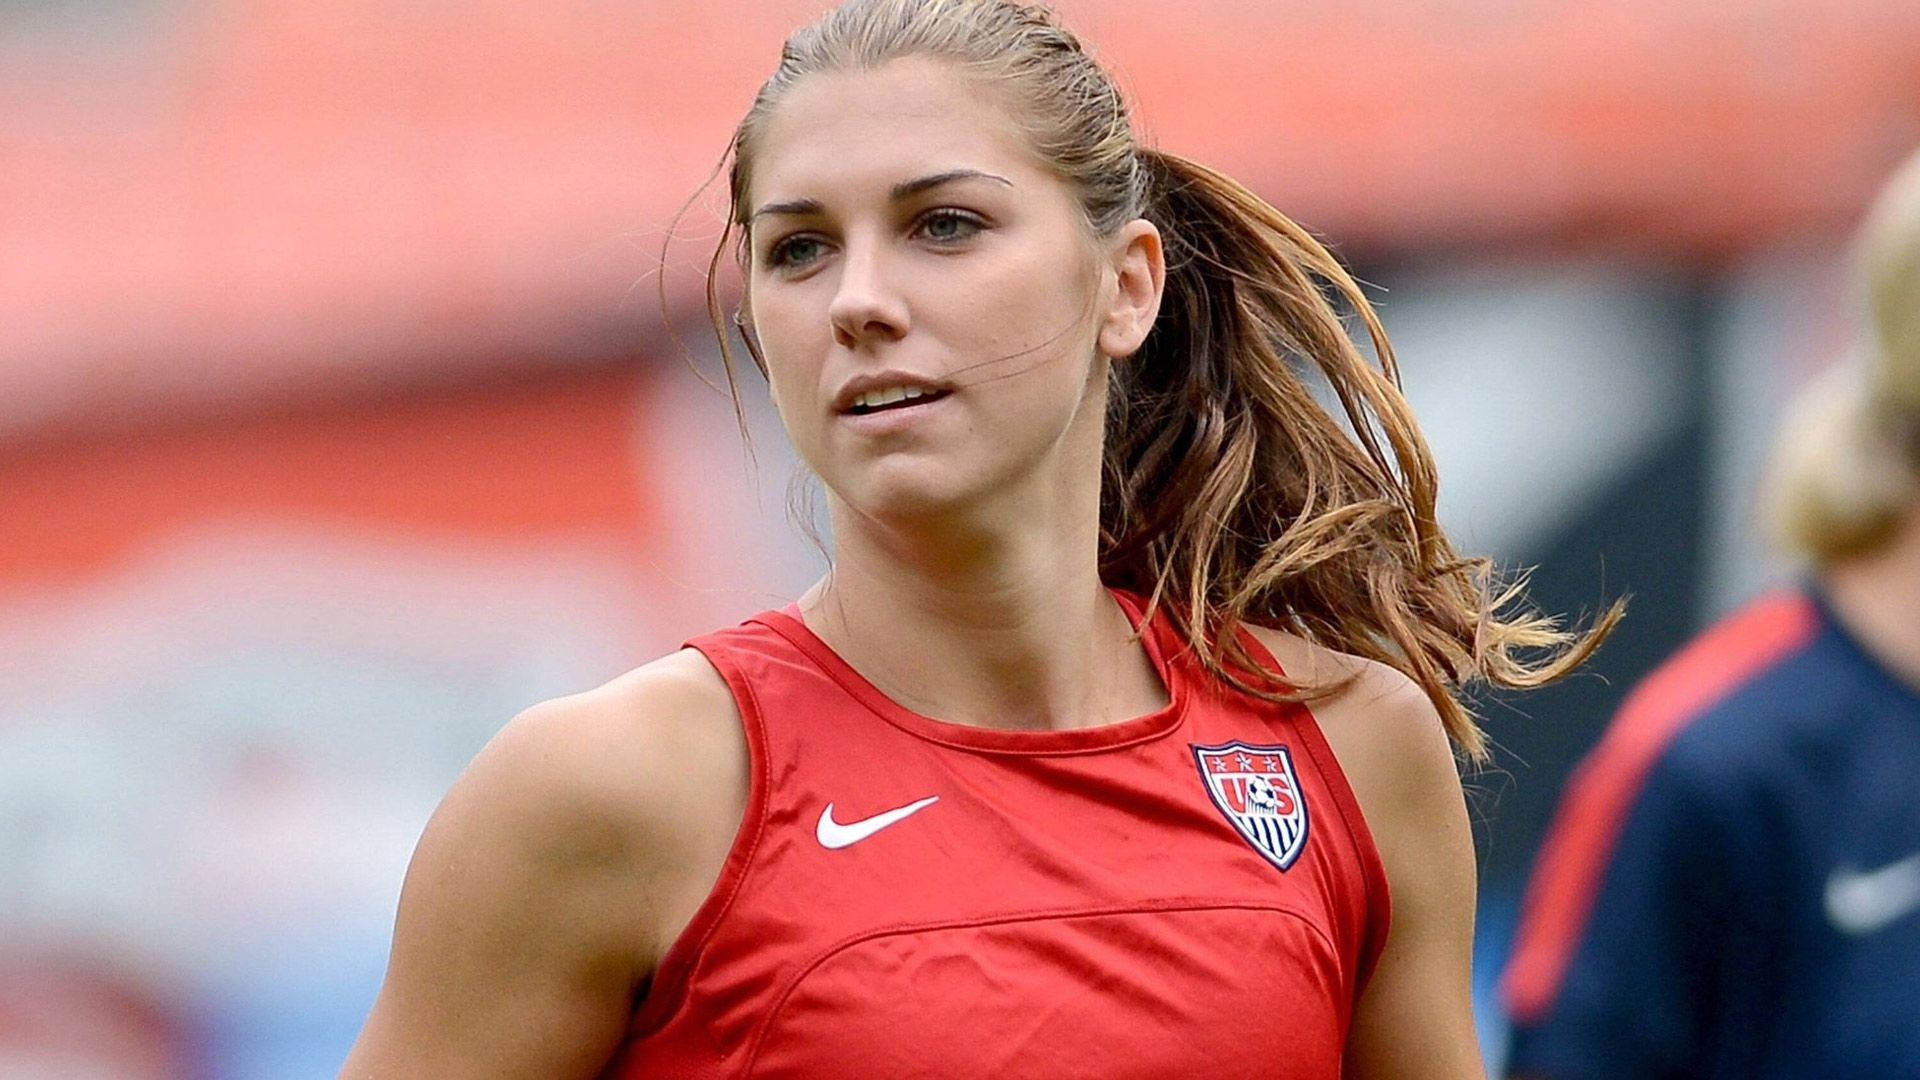 Alex Morgan Free Desktop Wallpaper